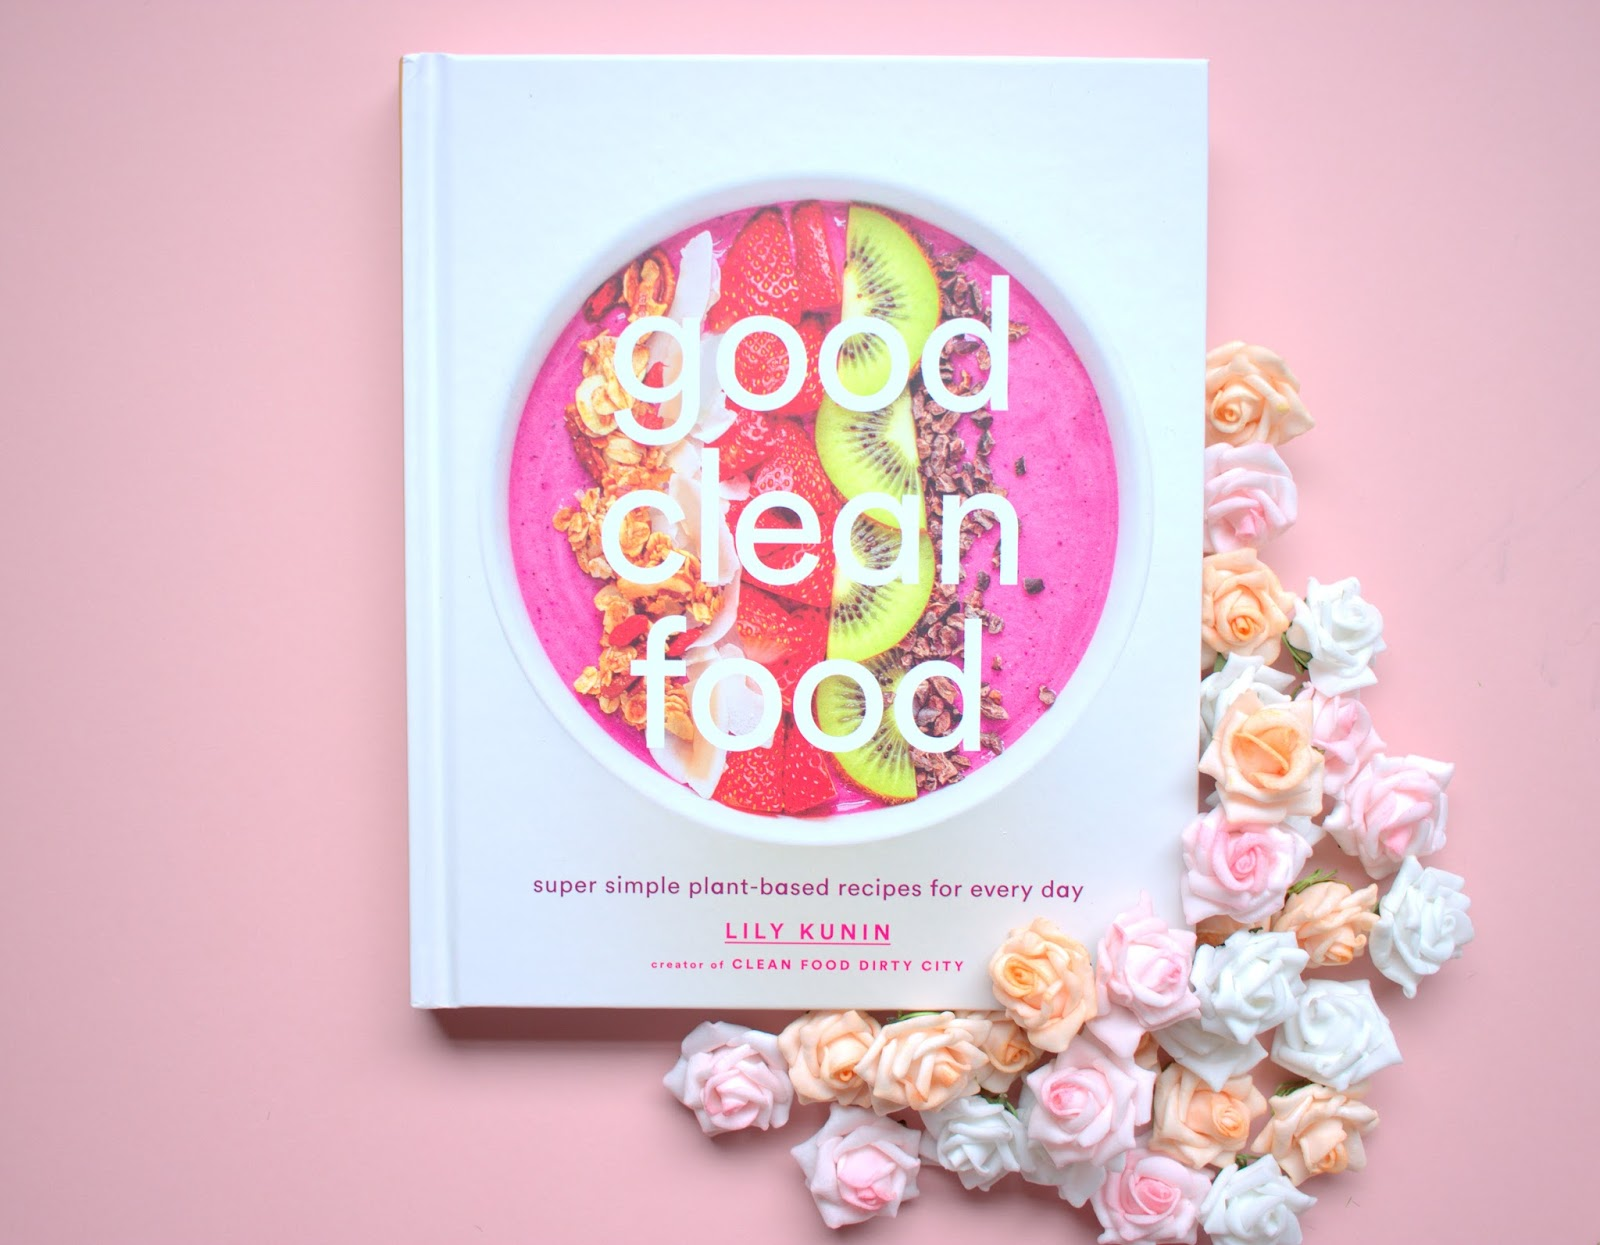 good clean food by lily kunin book review, plant based cookbook, clean food dirty city